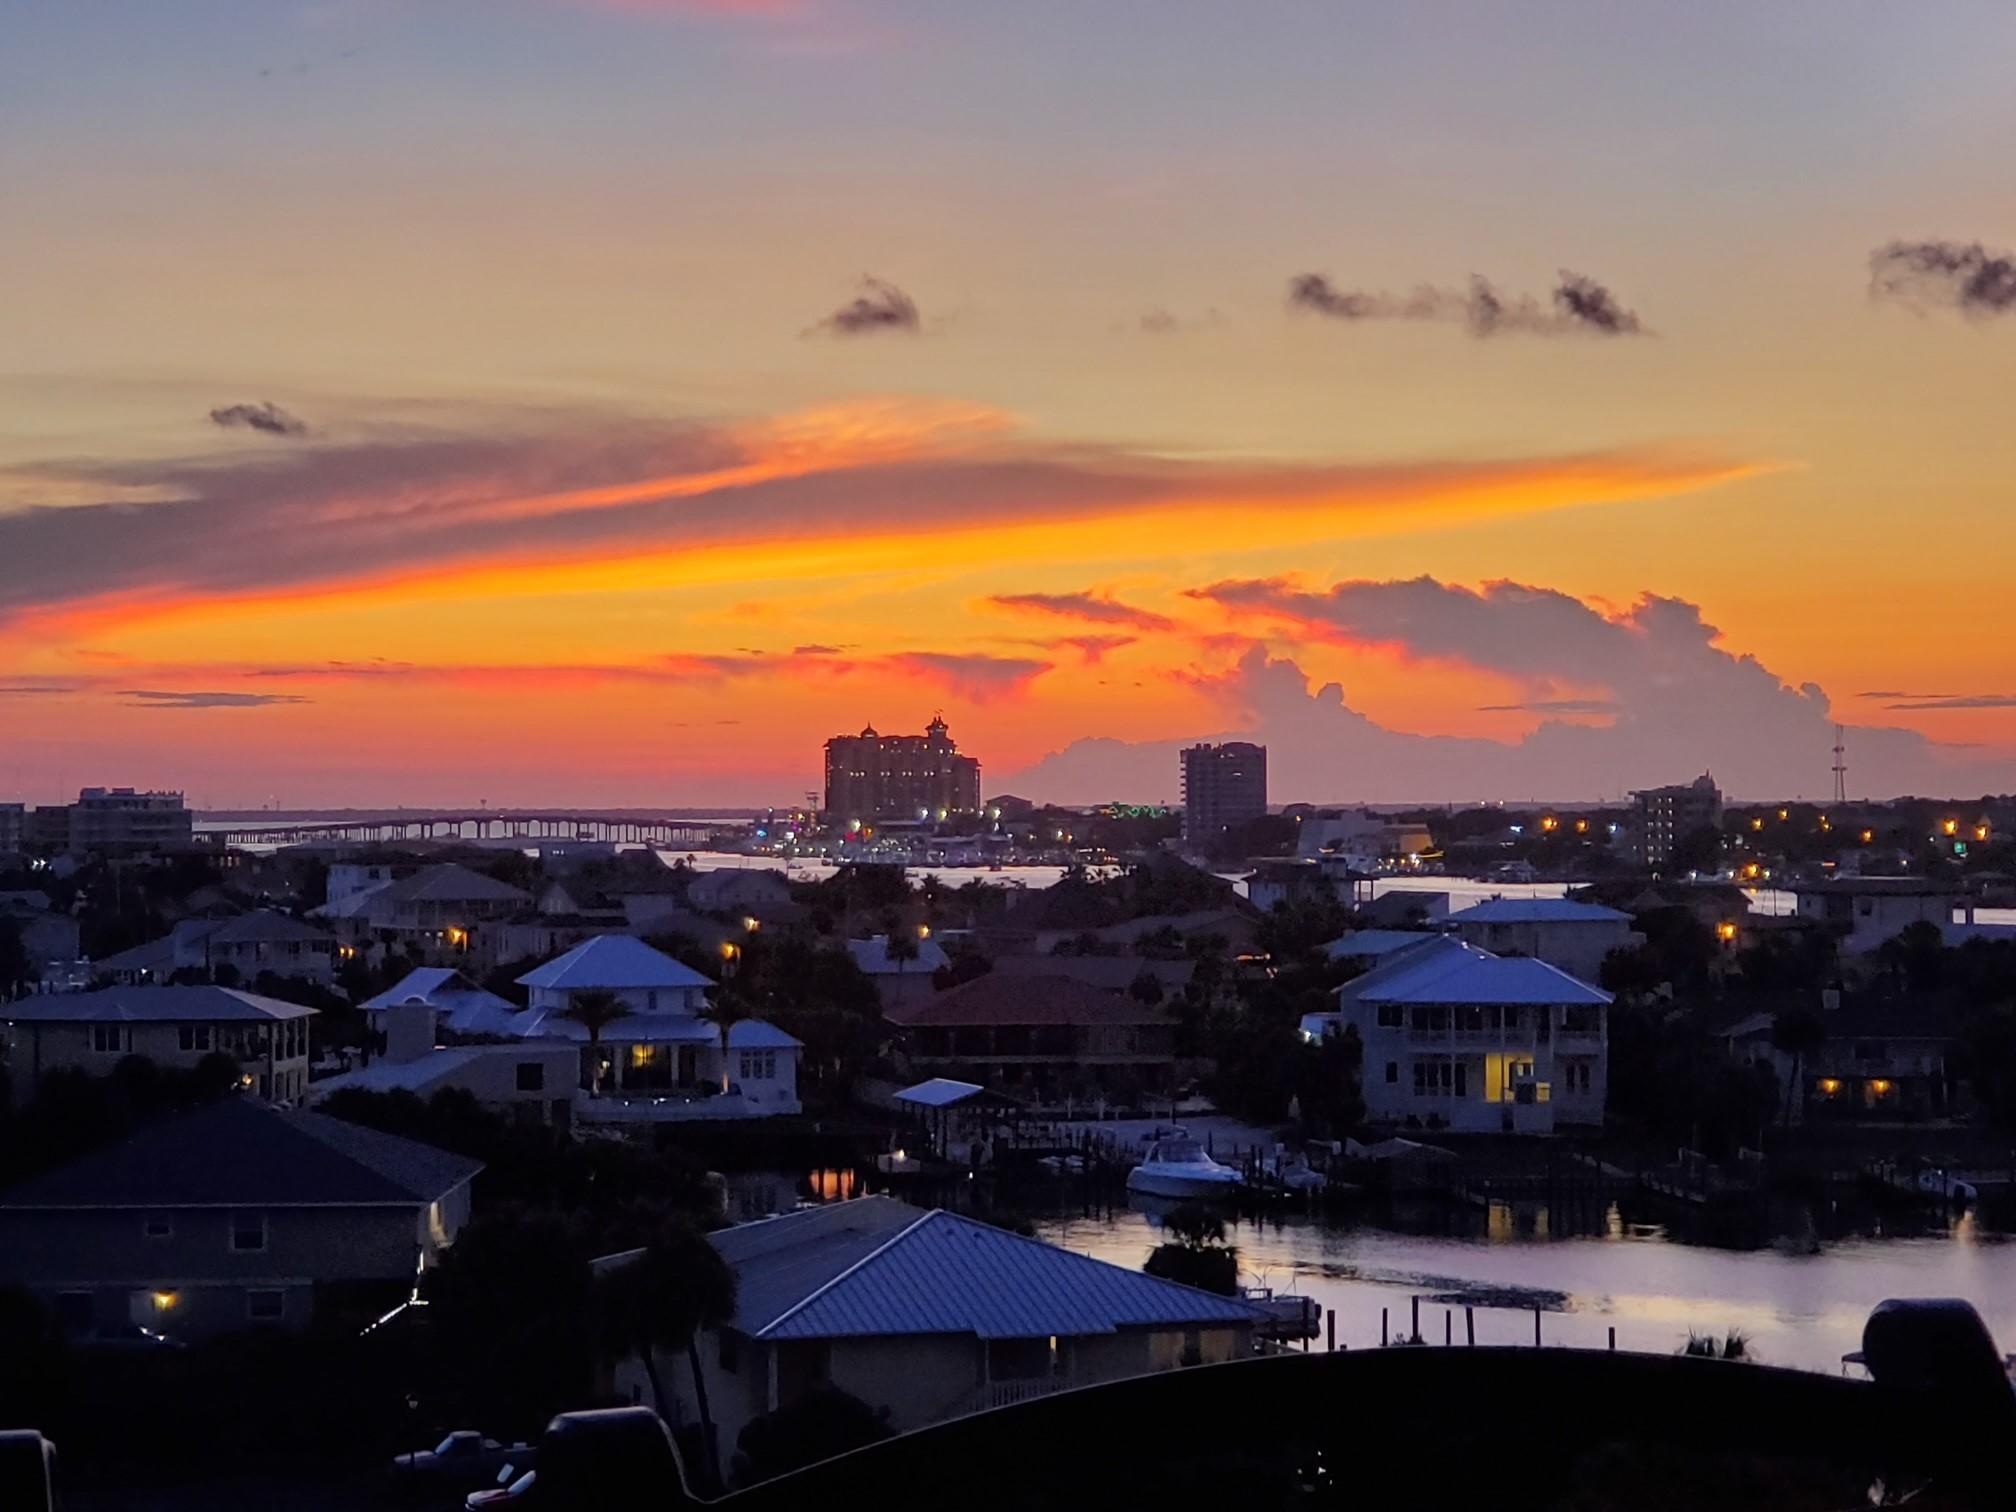 Stunning views of the Destin Harbor and the Gulf of Mexico in this 5th Floor ,3 bedroom 3 full bath condo! Imagine seeing sunsets 365 days a year on your oversized back balcony!!!! This unit has a spacious, open floor plan with Harbor and Gulf views from nearly every room. Enjoy sunrises on the 2nd balcony that is attached to one of the two master bedrooms and fireworks all summer long off the back balcony. All three bedrooms have an attached bath, one of which opens to the hallway as well.  Harbor Landing has two pools, one for owner's only and there is deeded beach access across the street. You will love this as a private residence, second home or a rental investment that you will definitely want to enjoy yourself. This unit comes with one covered parking space as well.